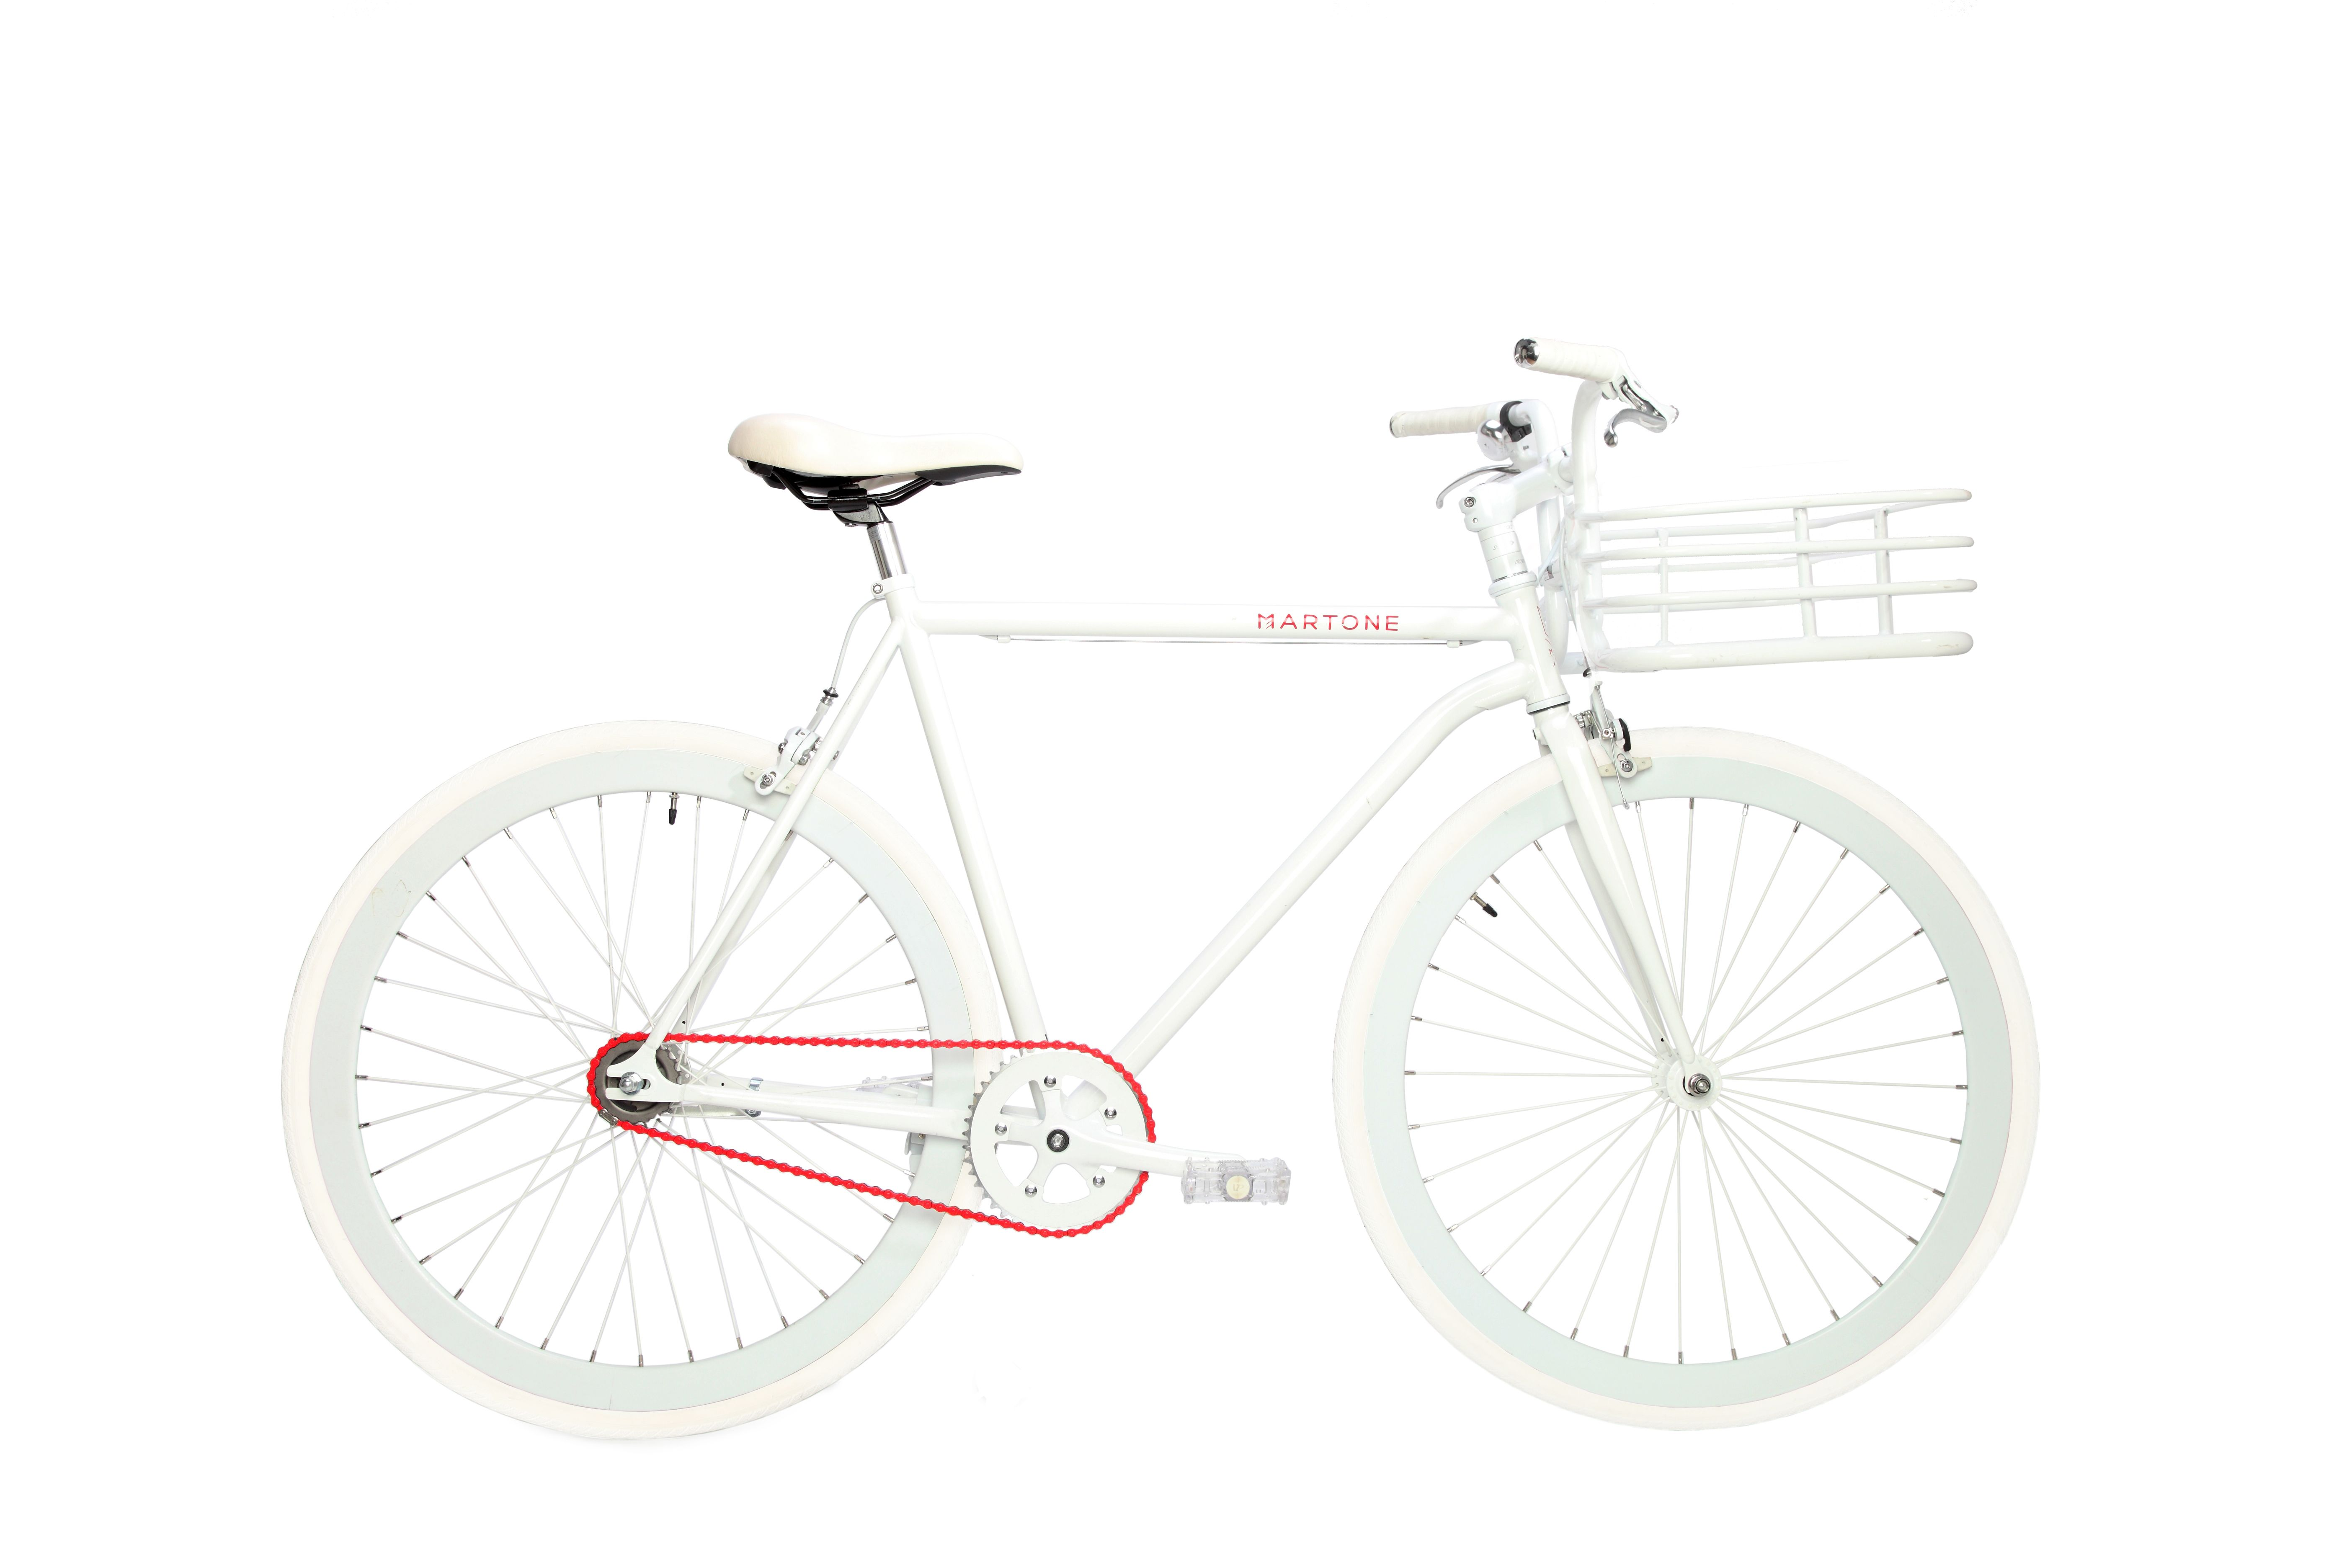 The Men S White Real Bike Is Composed Of Steel Alloy And Aluminum